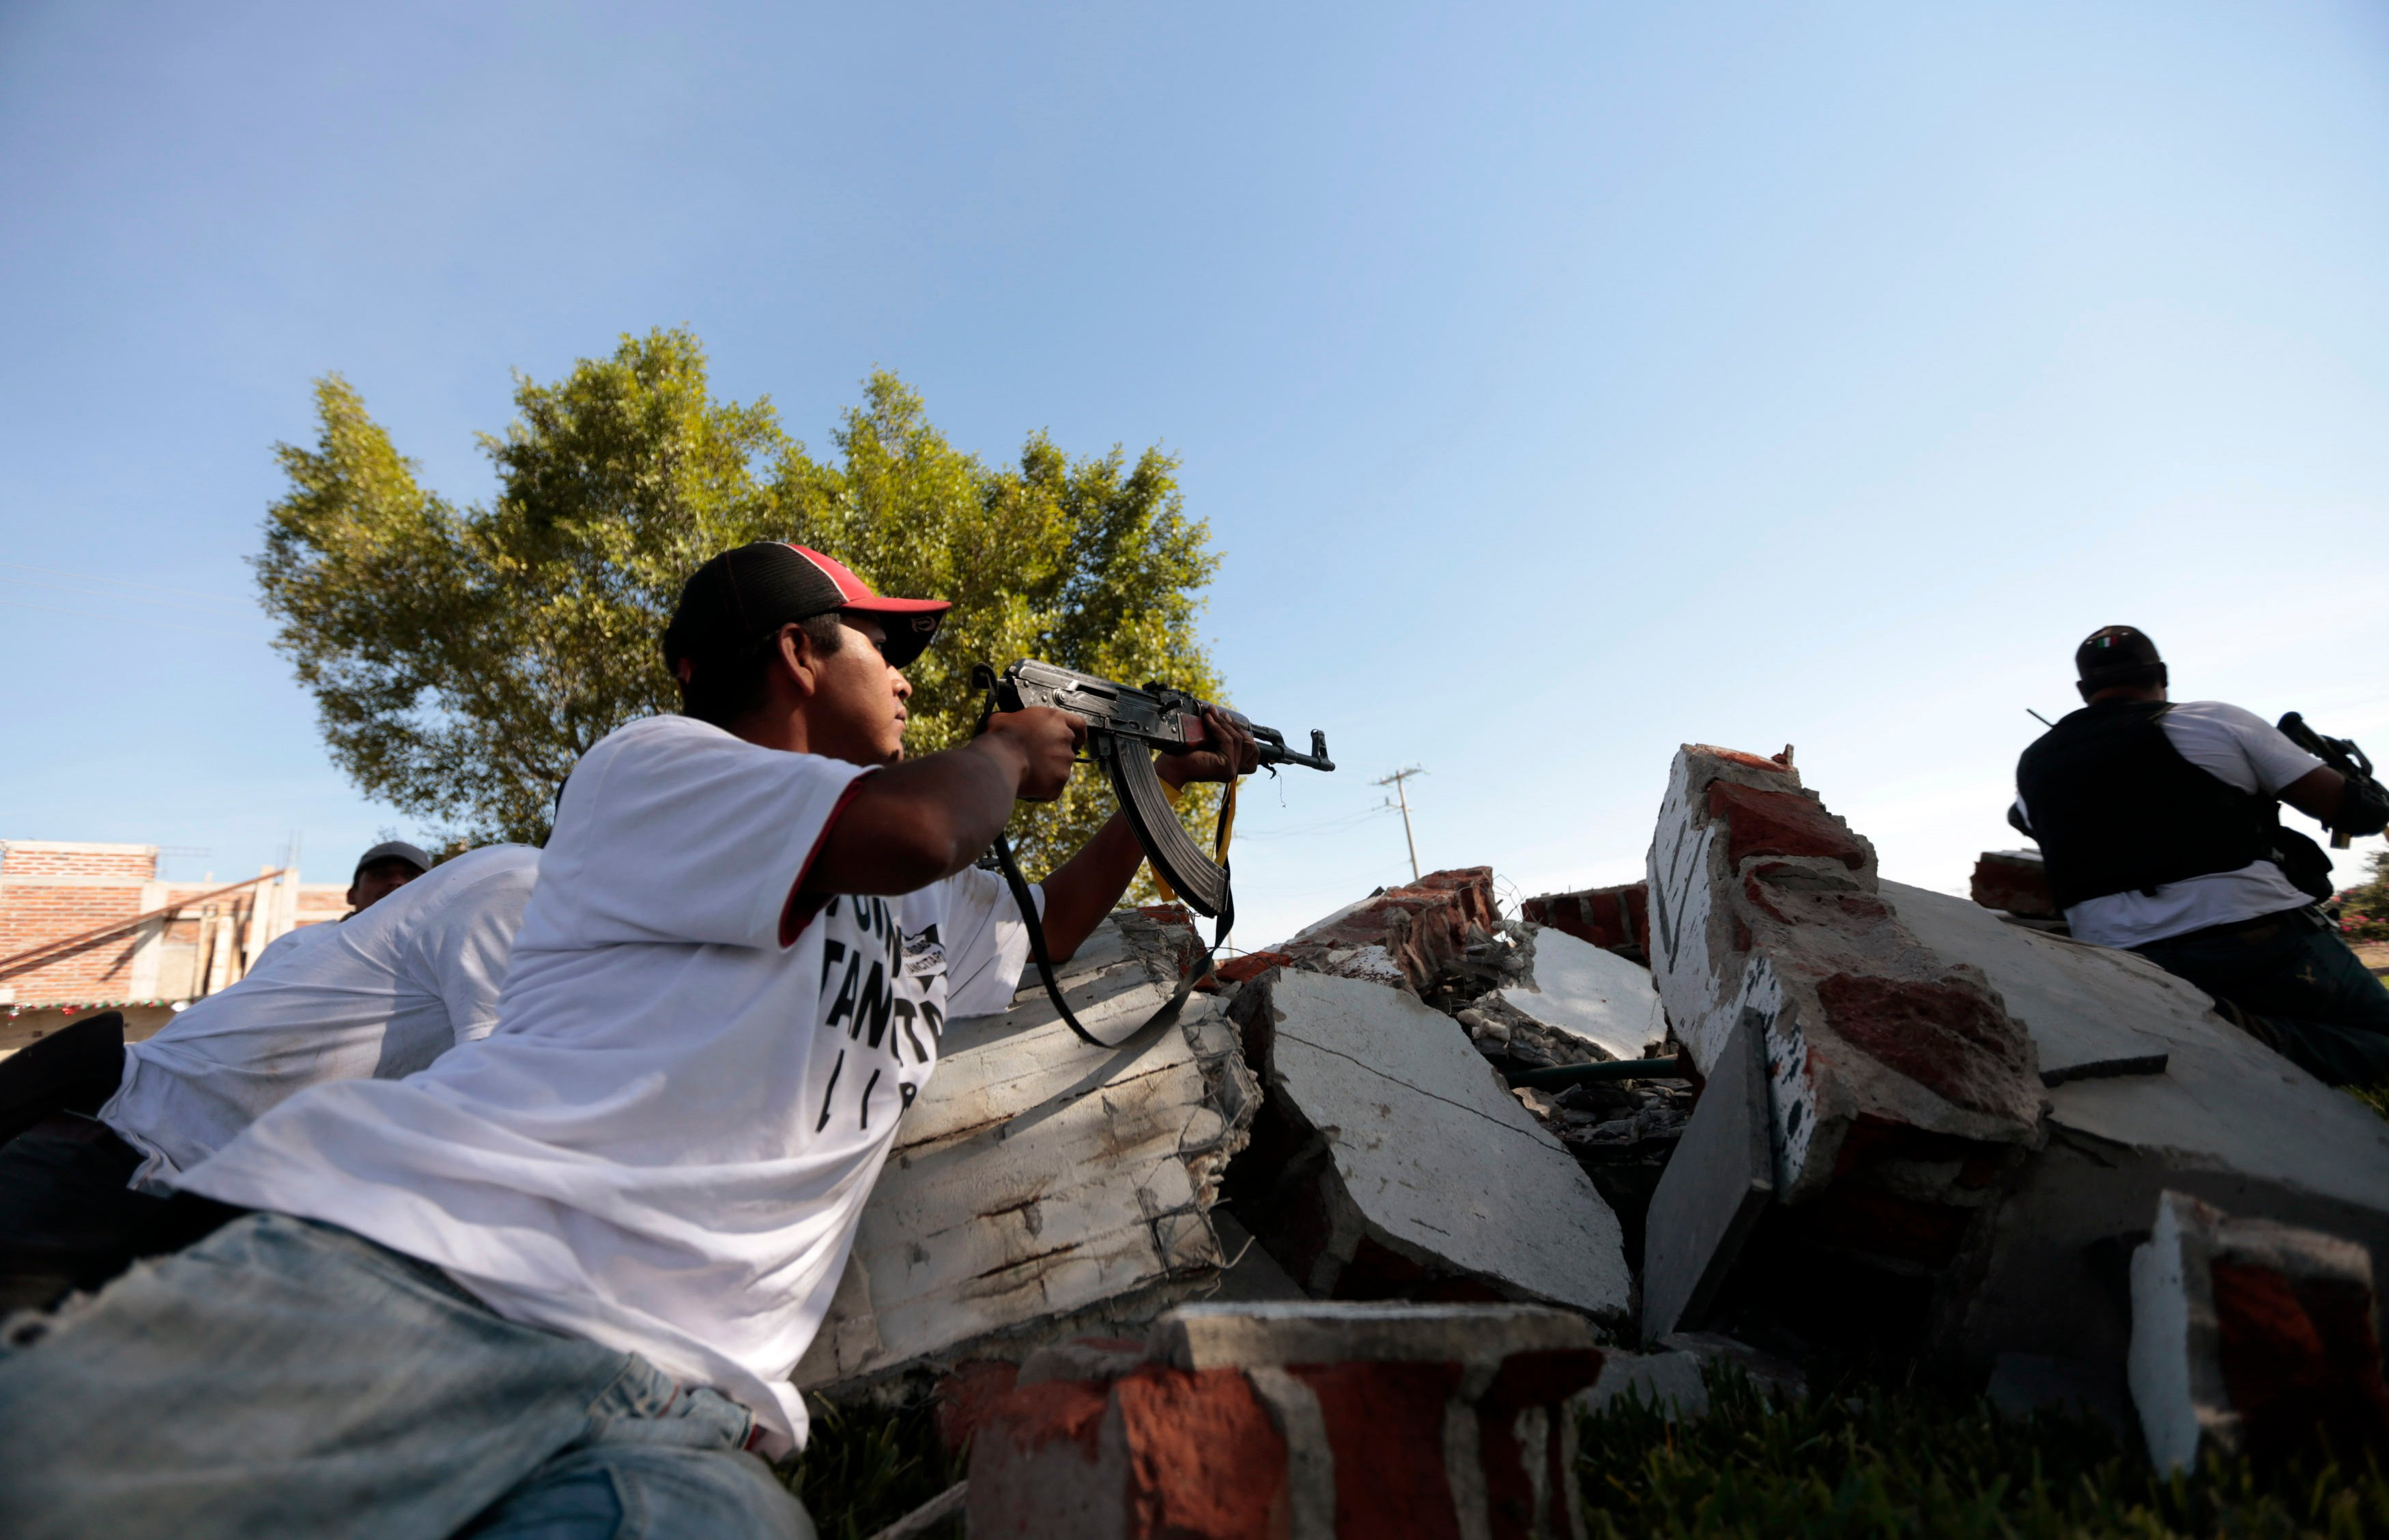 Vigilante member of the community police aims his weapon after entering the village of Paracuaro in Michoacan state